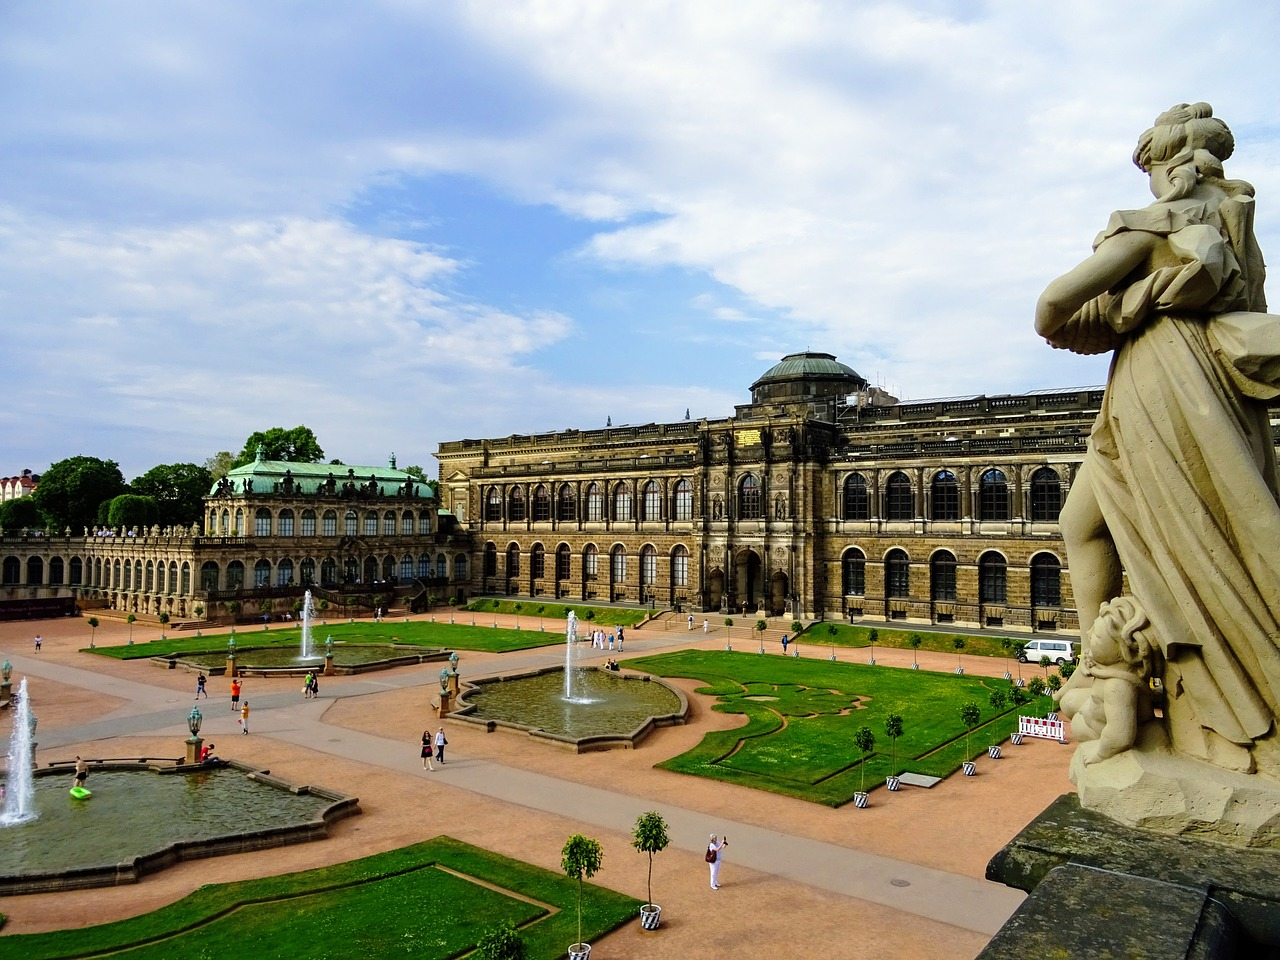 Zwinger Palace, Castles in Germany